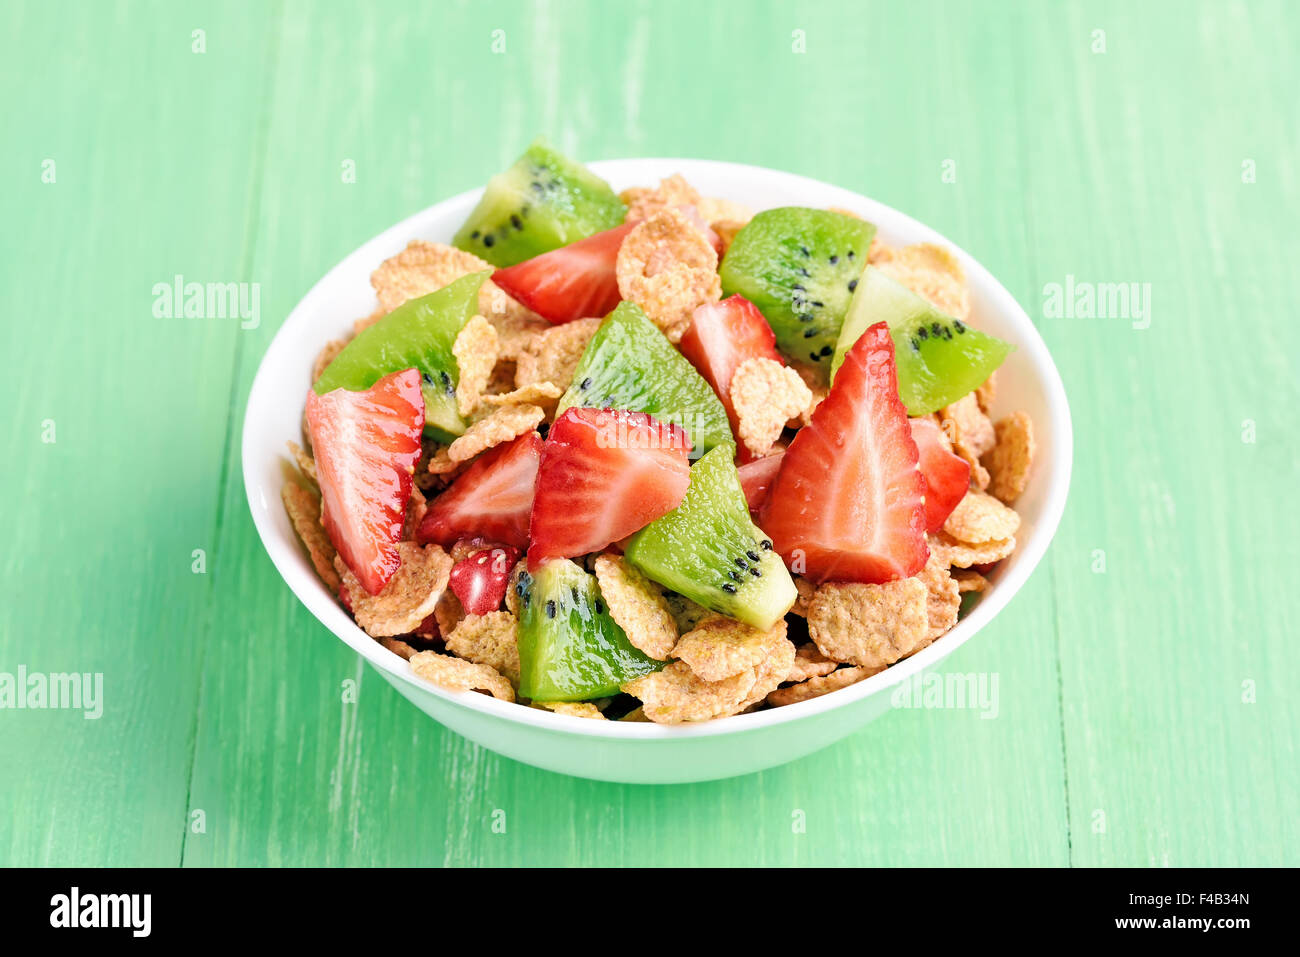 Corn flakes with fresh strawberry and kiwi slices in bowl on green table Stock Photo